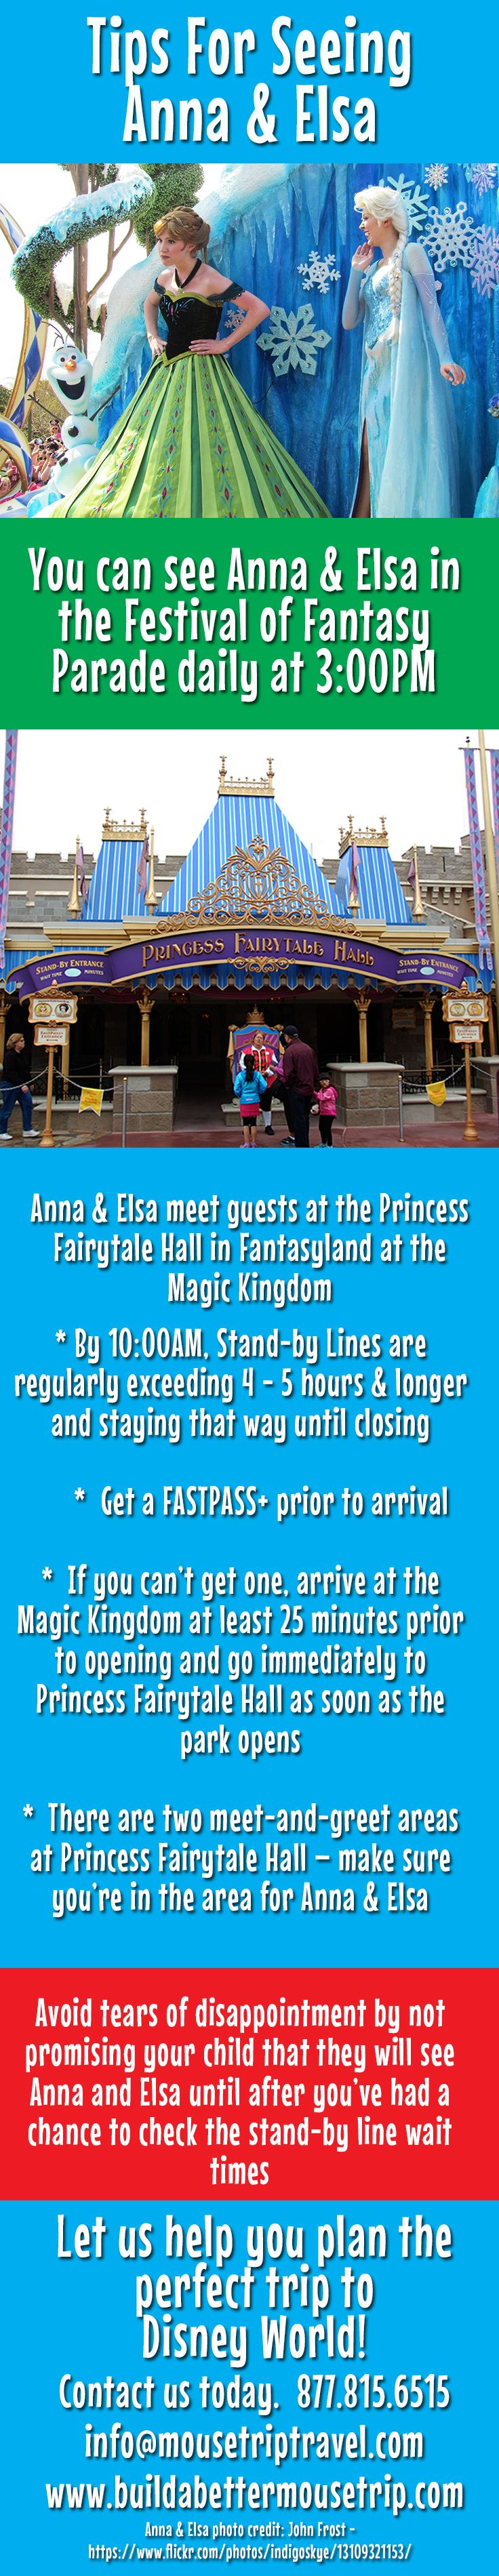 Tips for meeting Anna & Elsa (and other princesses too)!